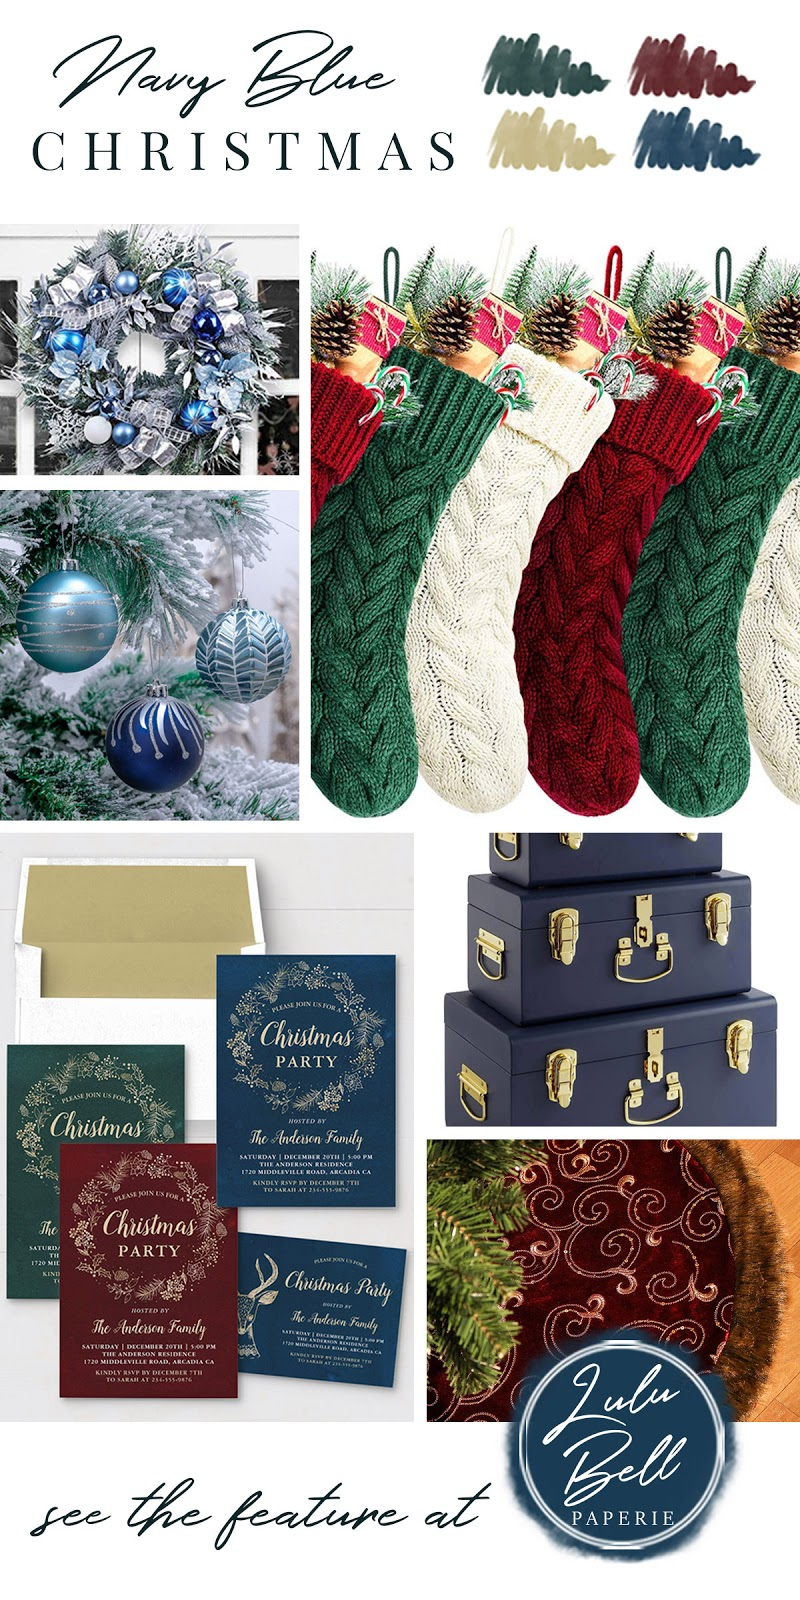 Burgundy, Navy Blue, Gold, and Green Christmas Color Palette Inspiration - Door Wreath, Stockings, Holiday Ornaments, Stationery Set, Storage Trunks, and Tree Skirt